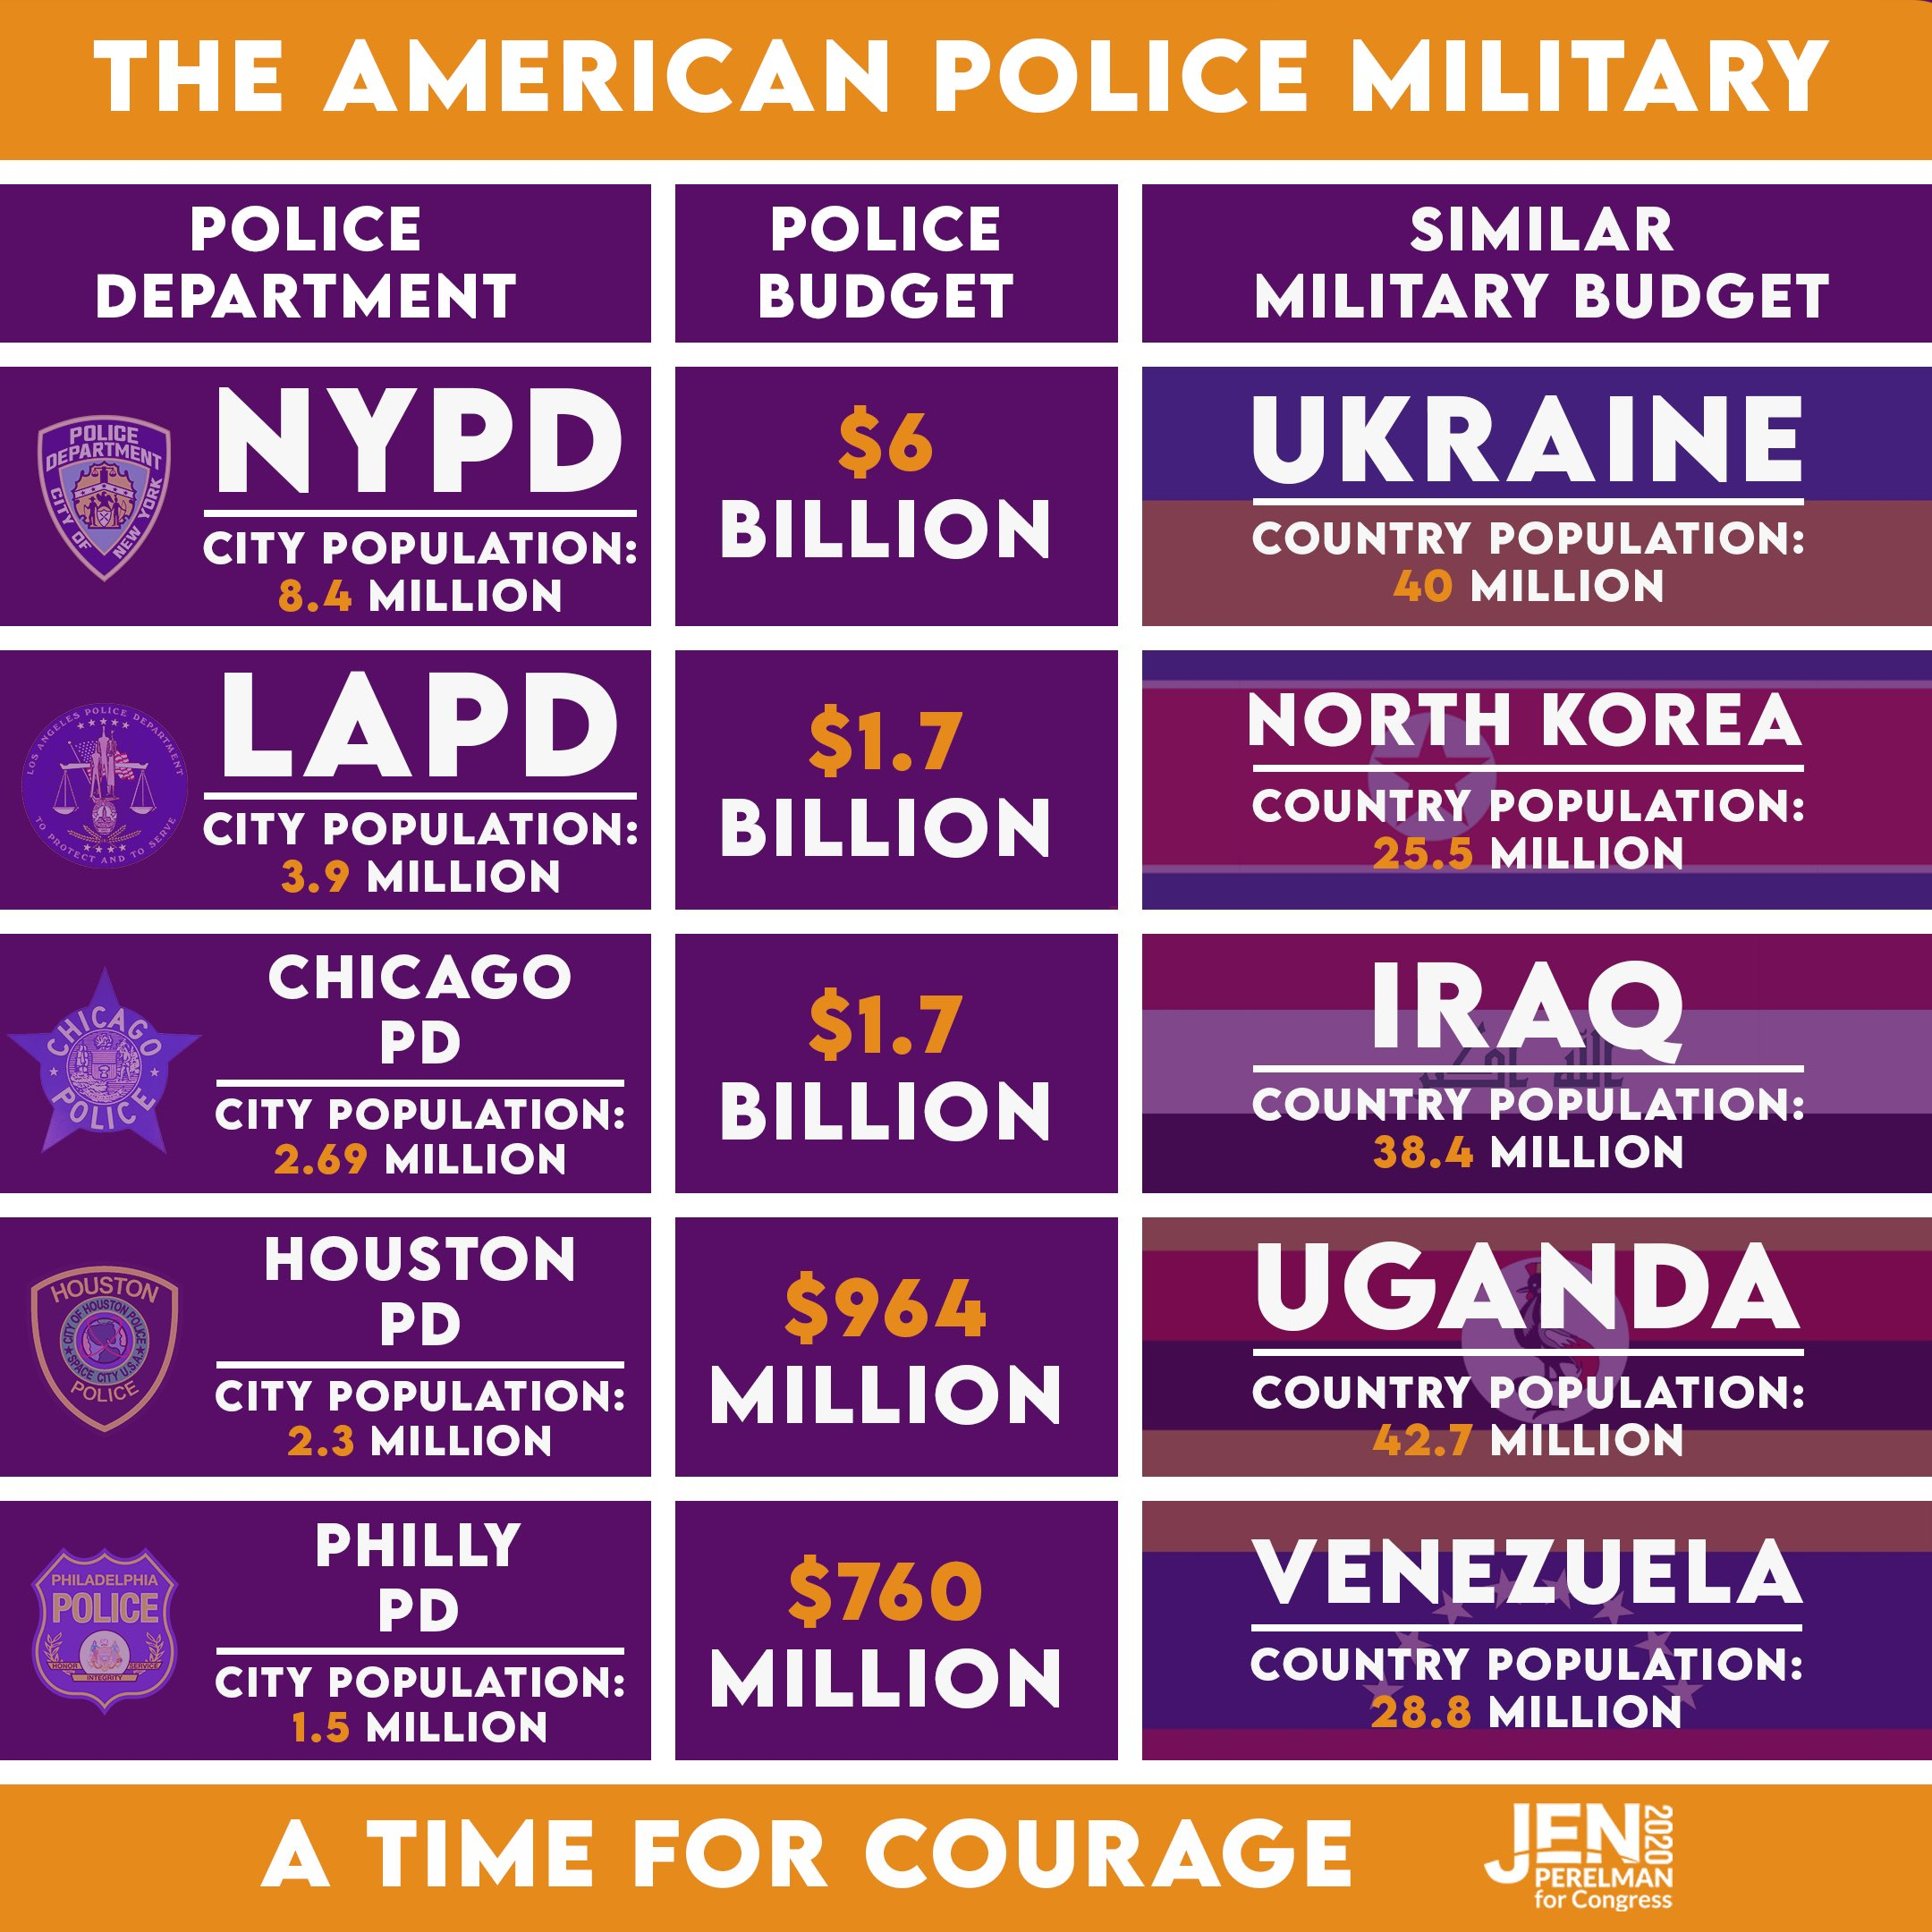 equates city police budgets with military budgets of other countries